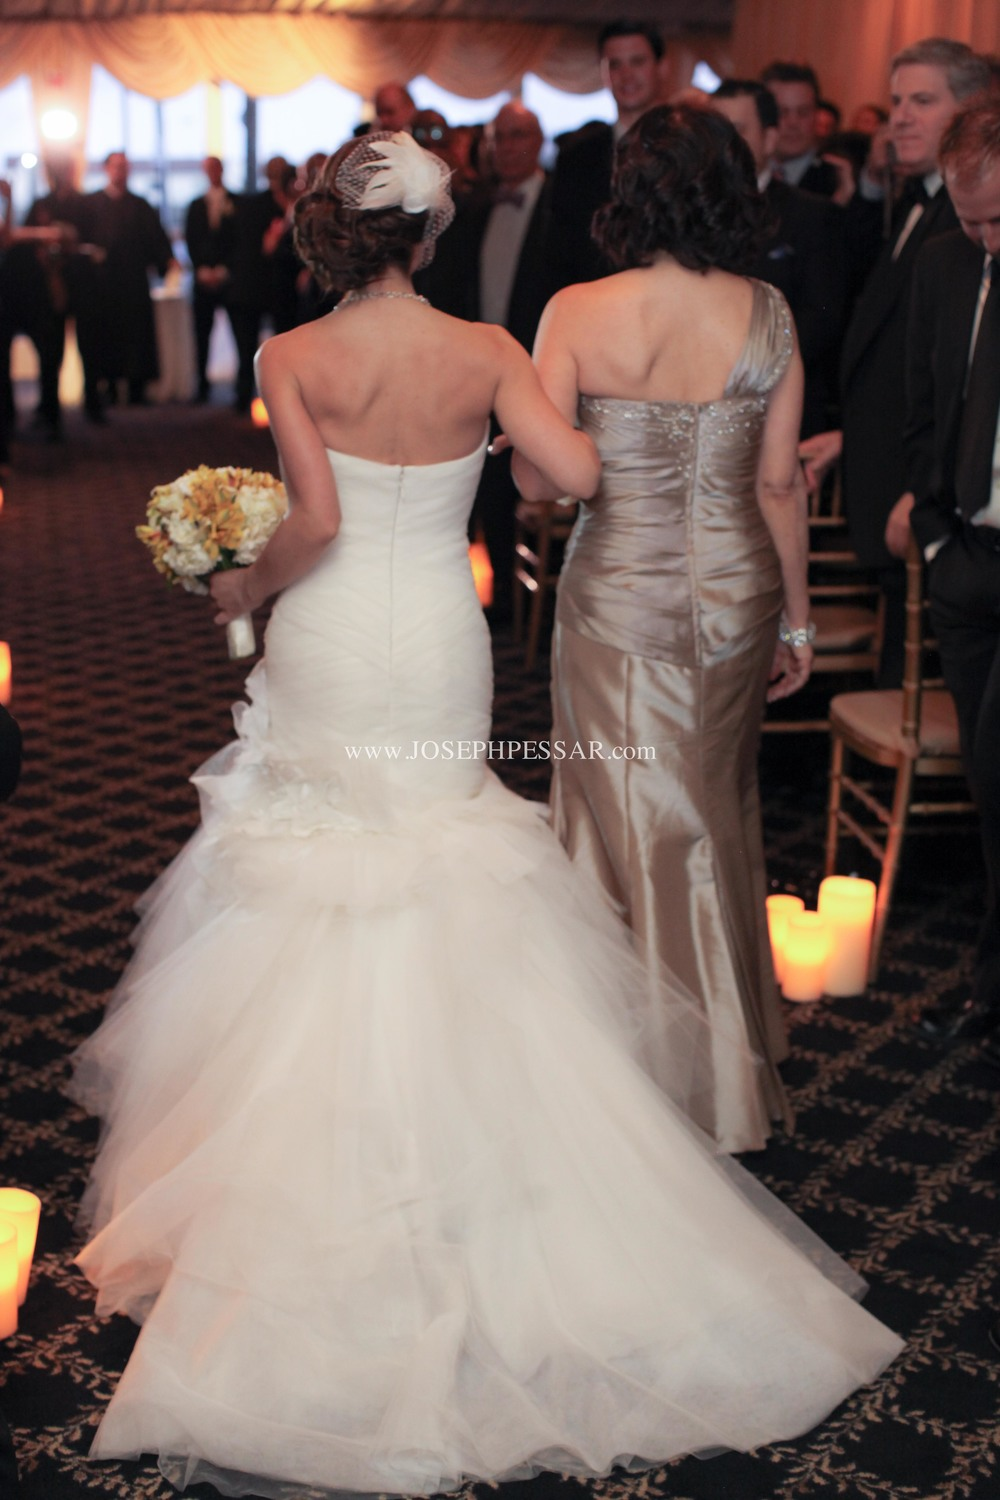 nyc_wedding_photographer0033.jpg